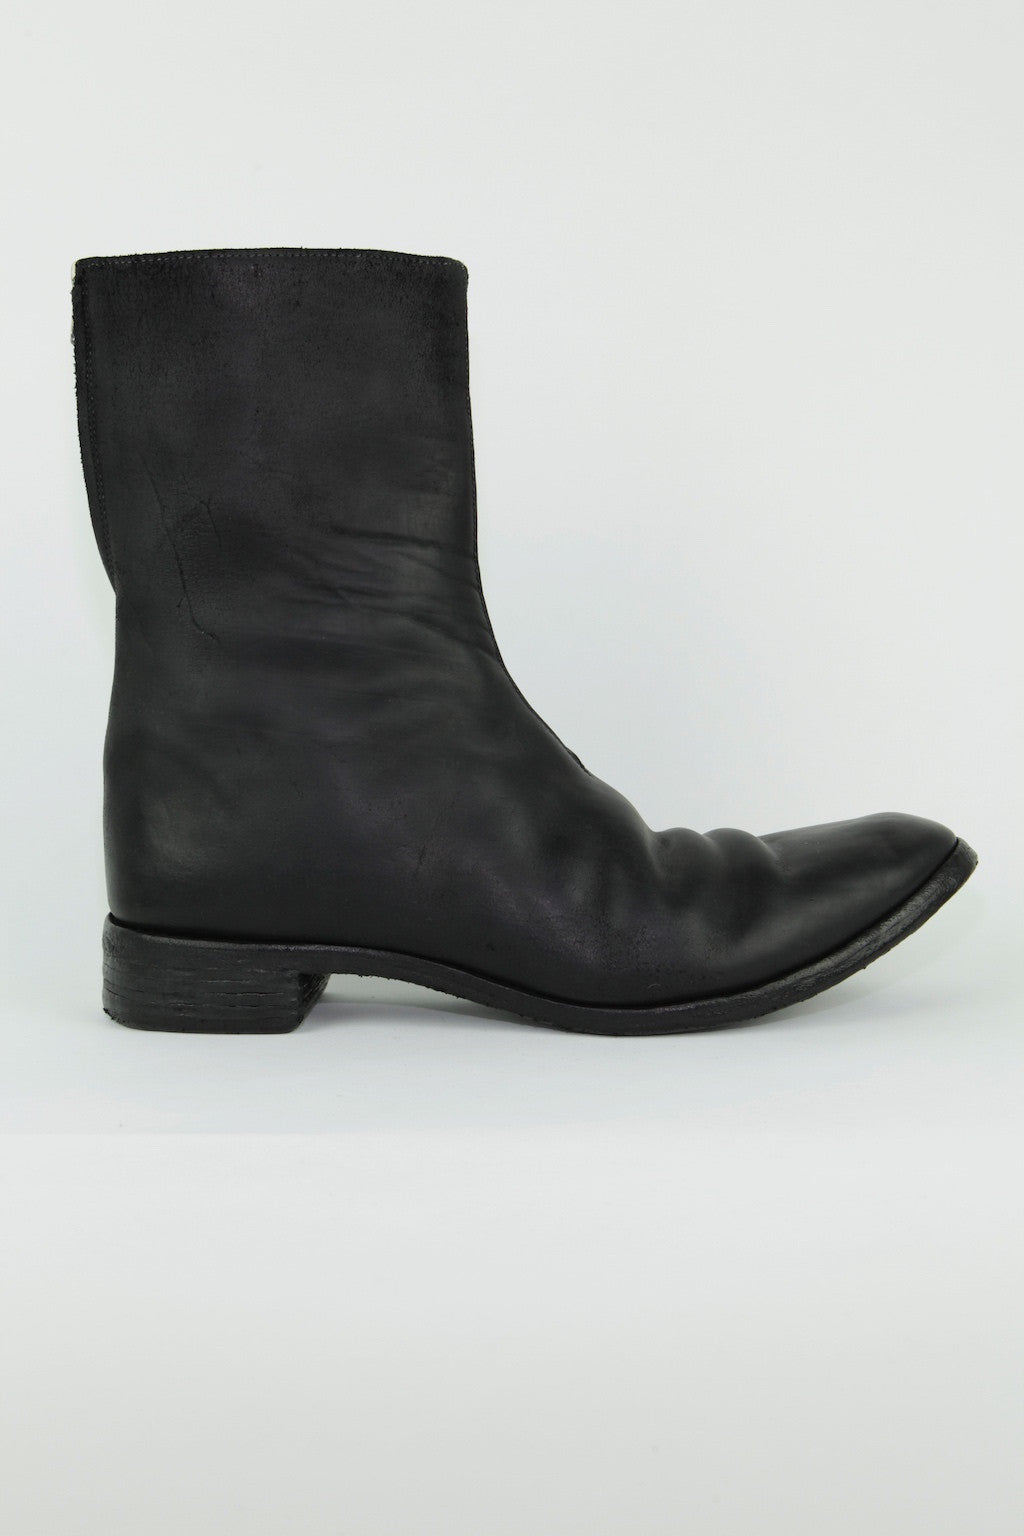 O.D. unlined diagonal zip good year boot